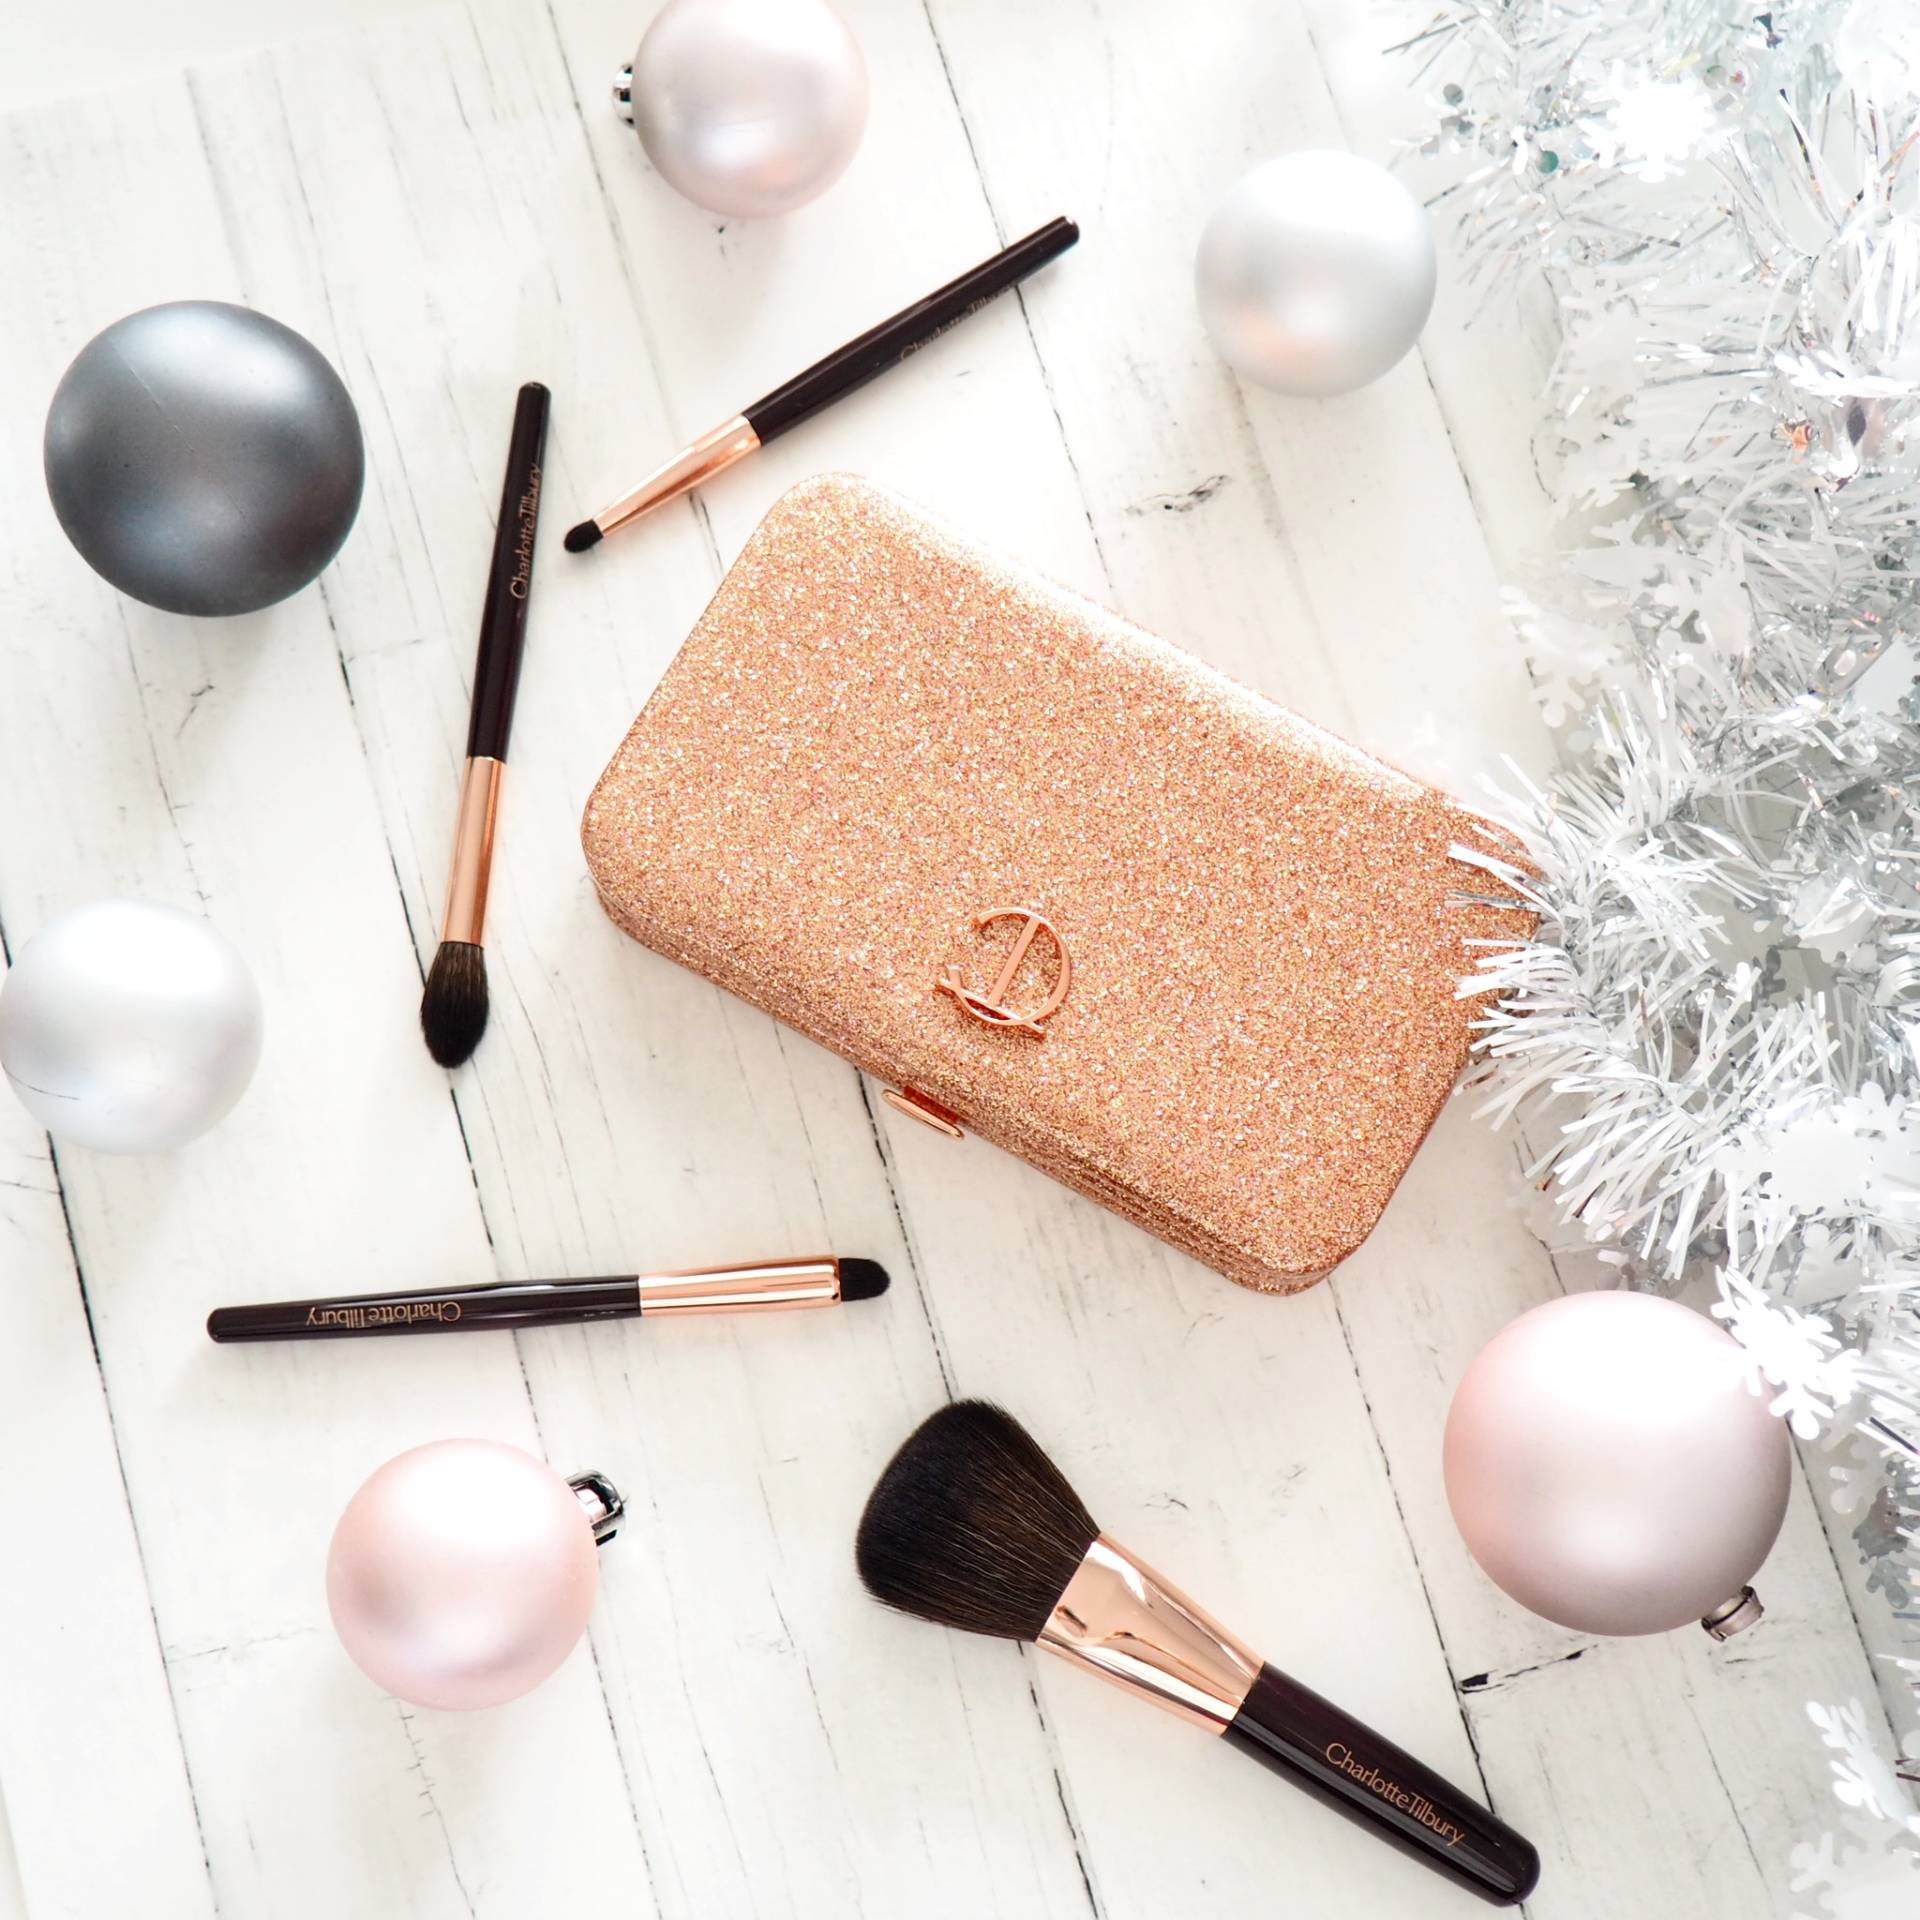 Charlotte-Tilbury-Makeup-Brushes